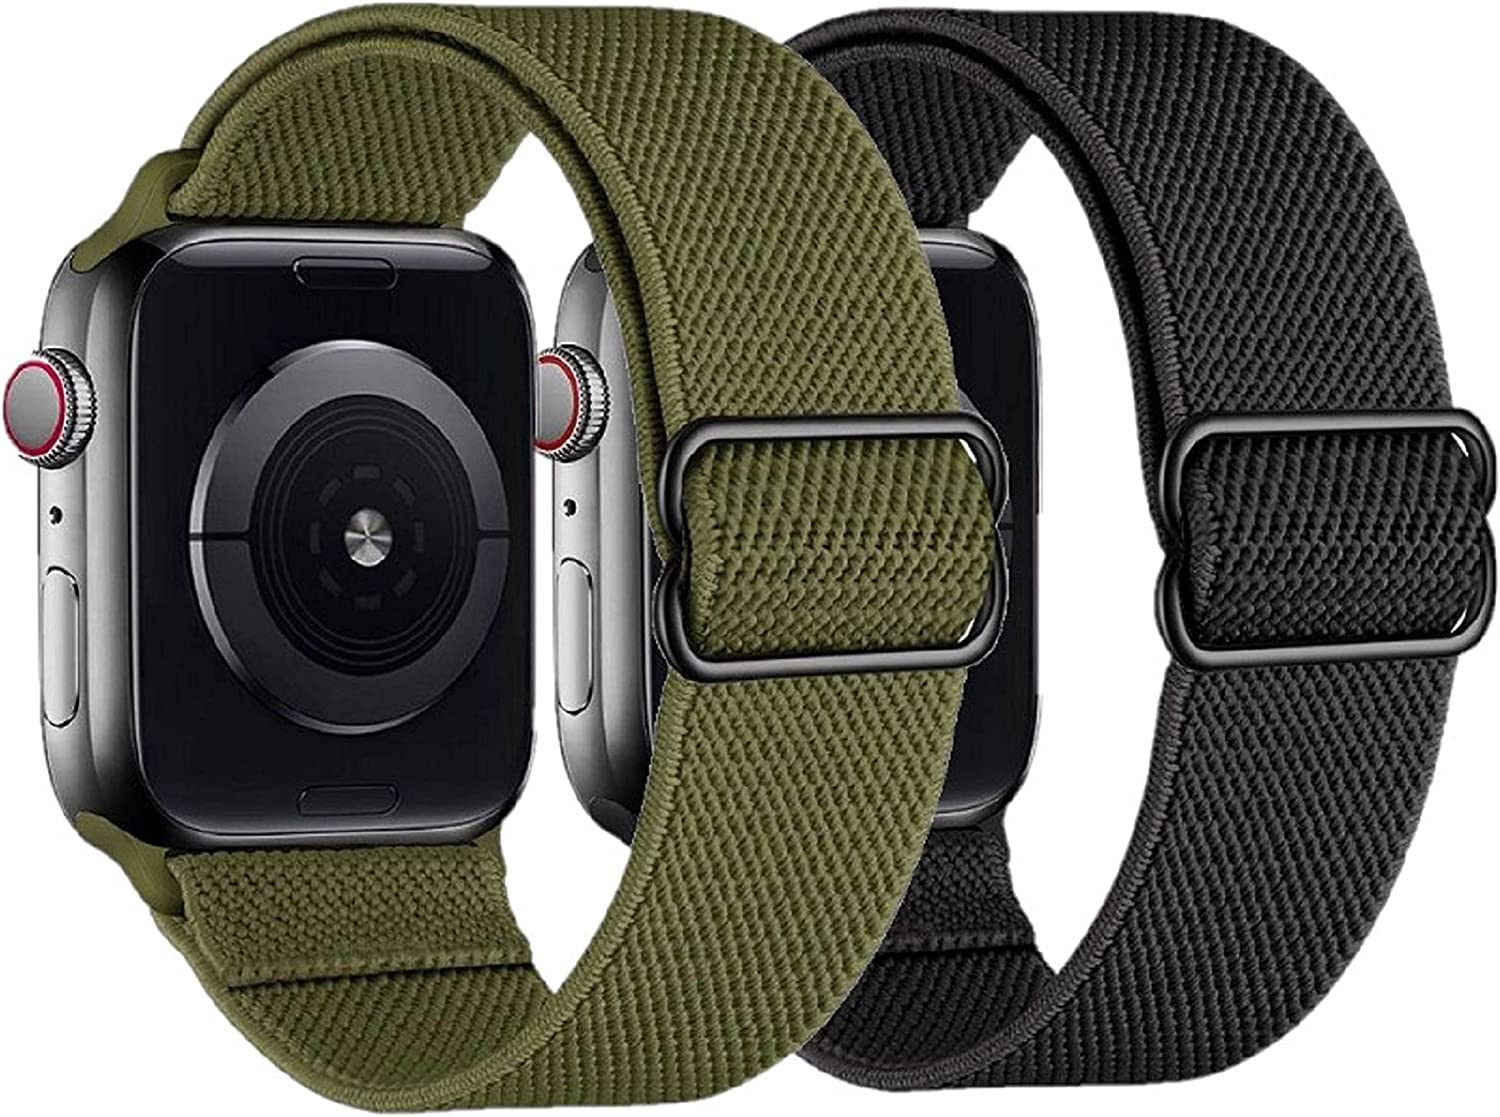 2 Pack Stretchy Straps Compatible with Apple Watch Bands 38mm 40mm 42mm 44mm, Adjustable Braided Solo Loop Nylon Bands Compatible for iwatch series 6/5/4/3/2/1/SE Men & Women